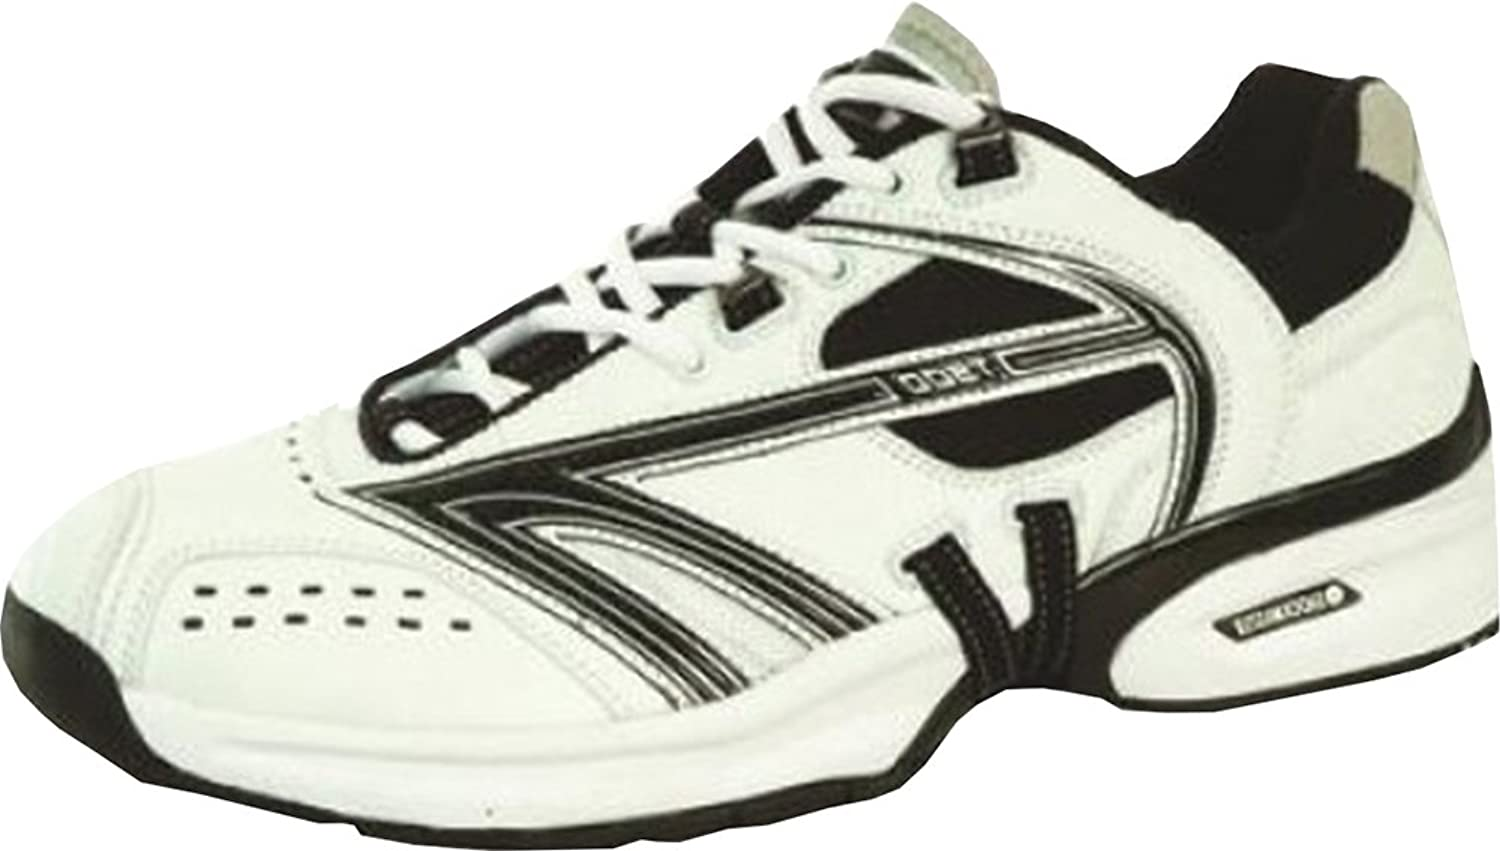 New Hi-Tec T500 Charon Tennis shoes Sports Footwear Mens Trainers